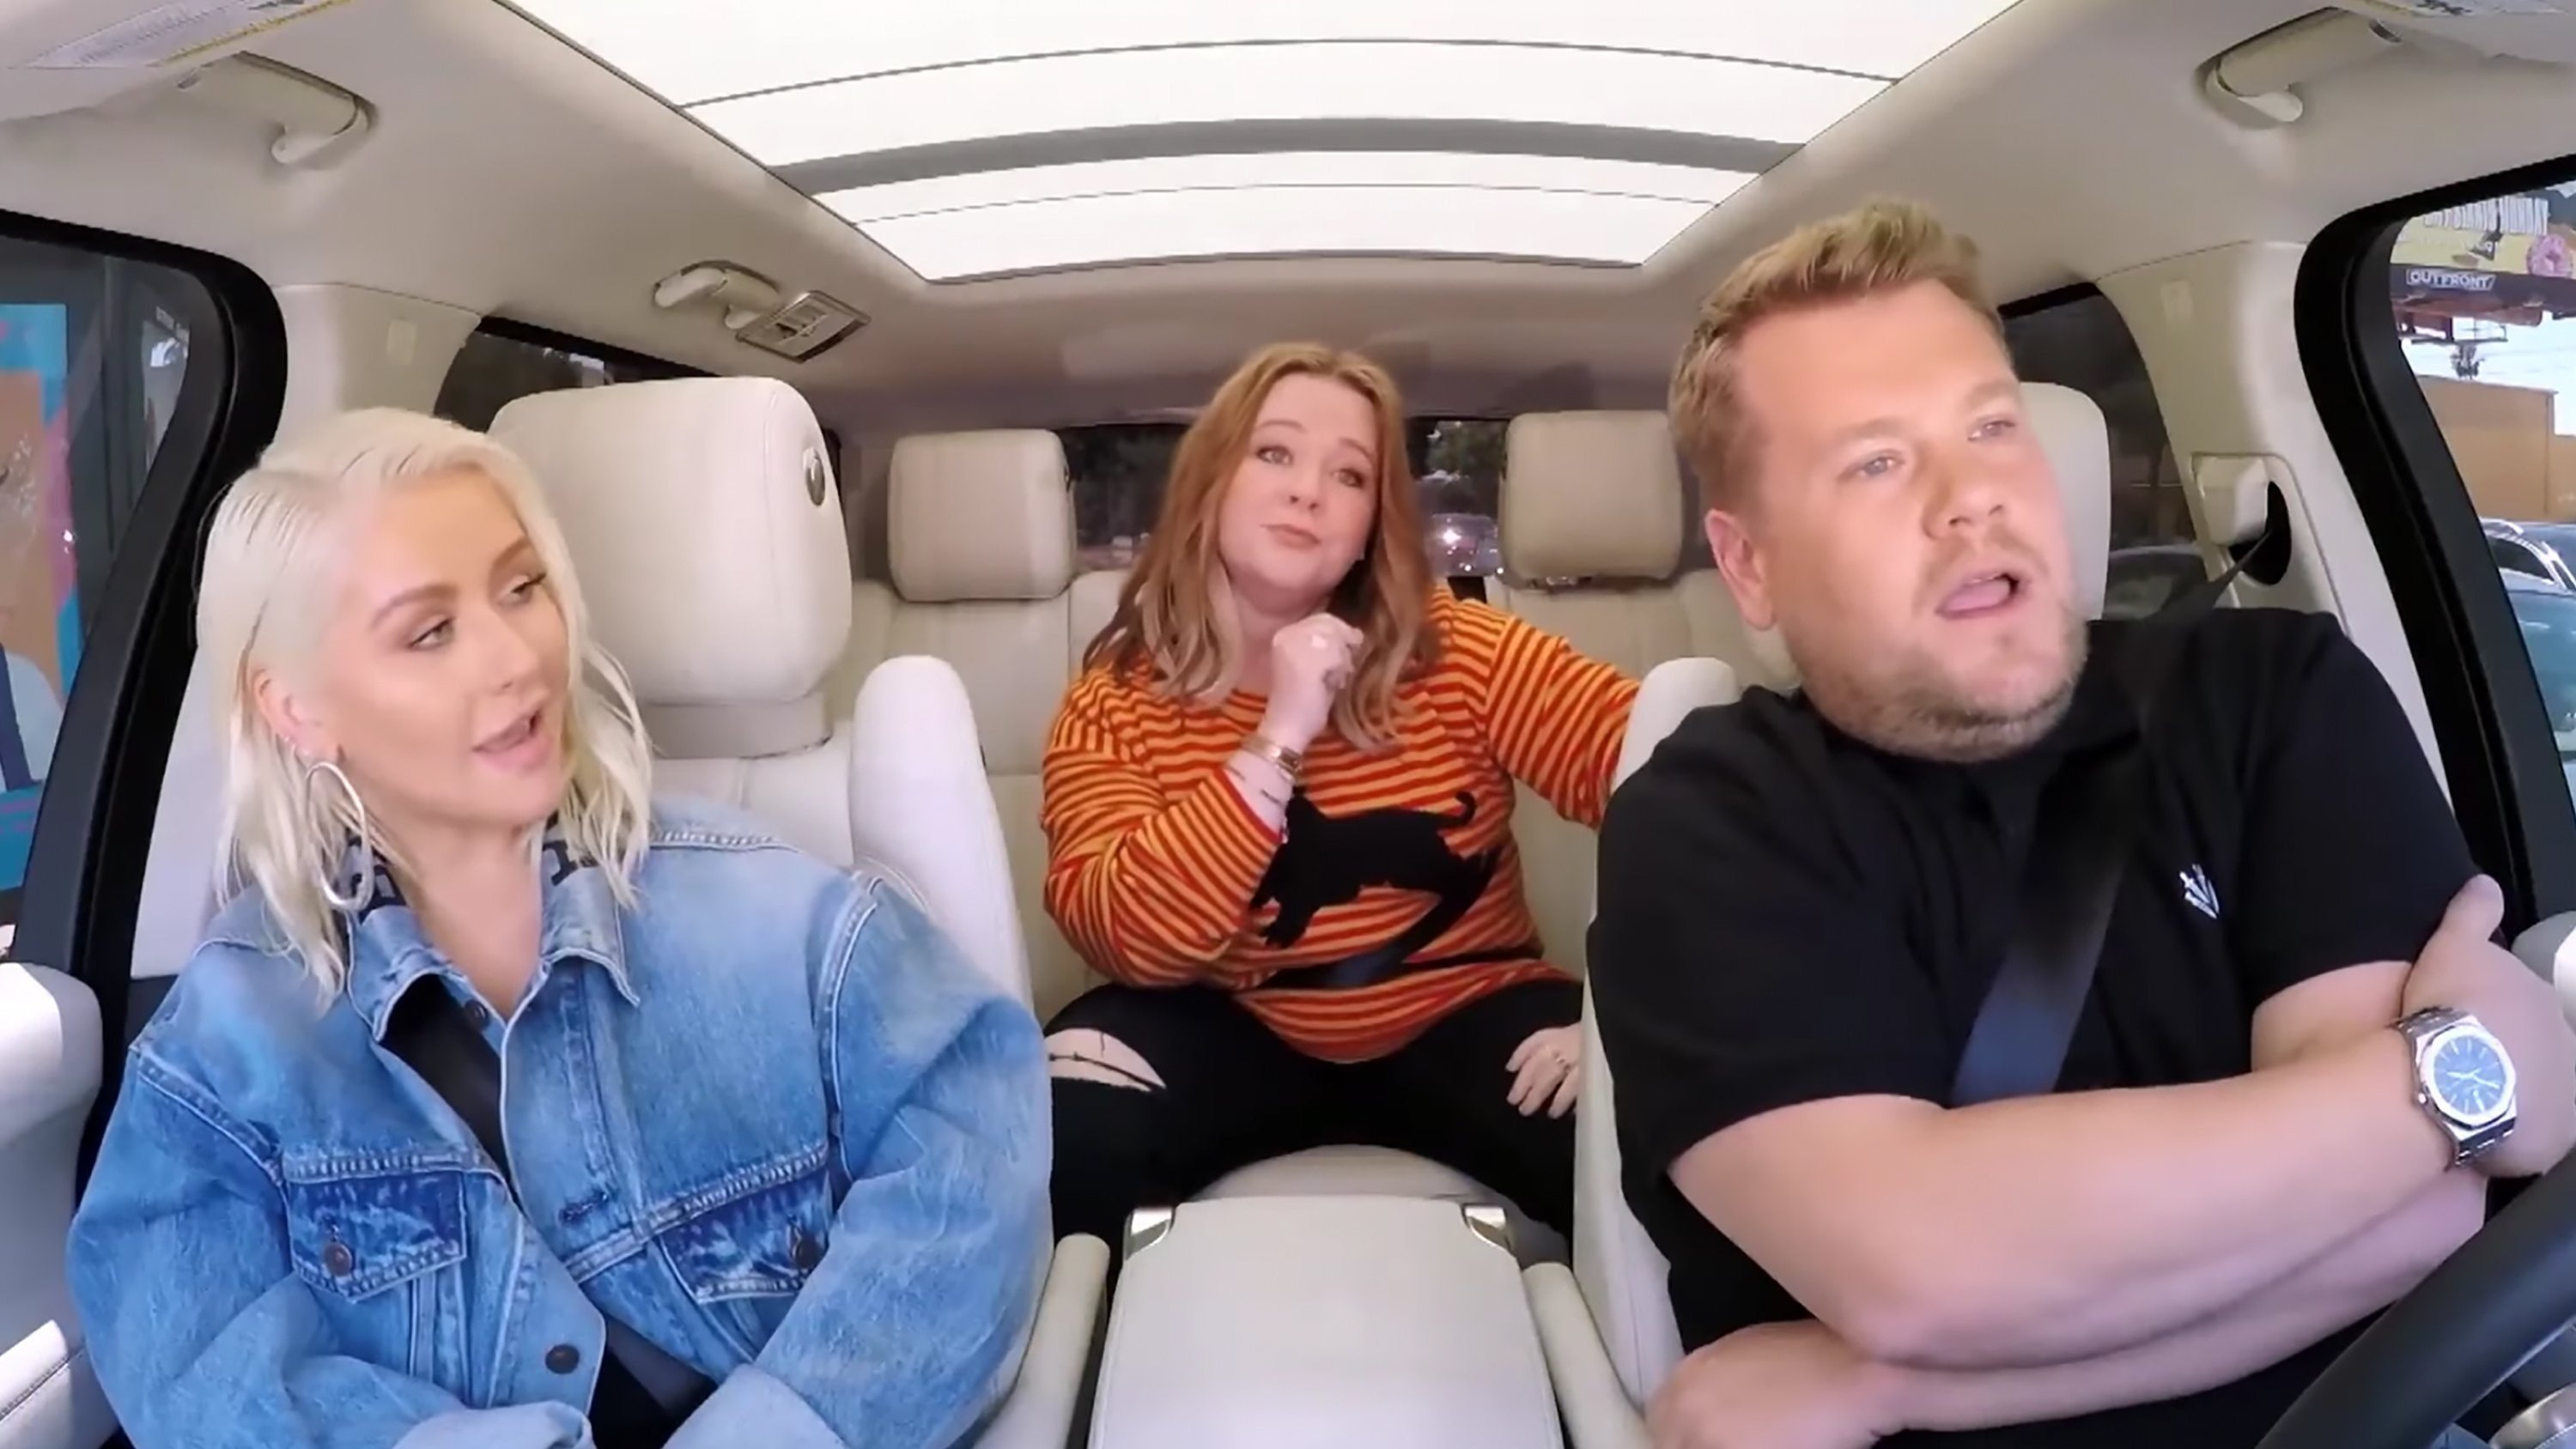 Vocal Lessons And MMC Secrets From Christina Aguilera On Carpool Karaoke